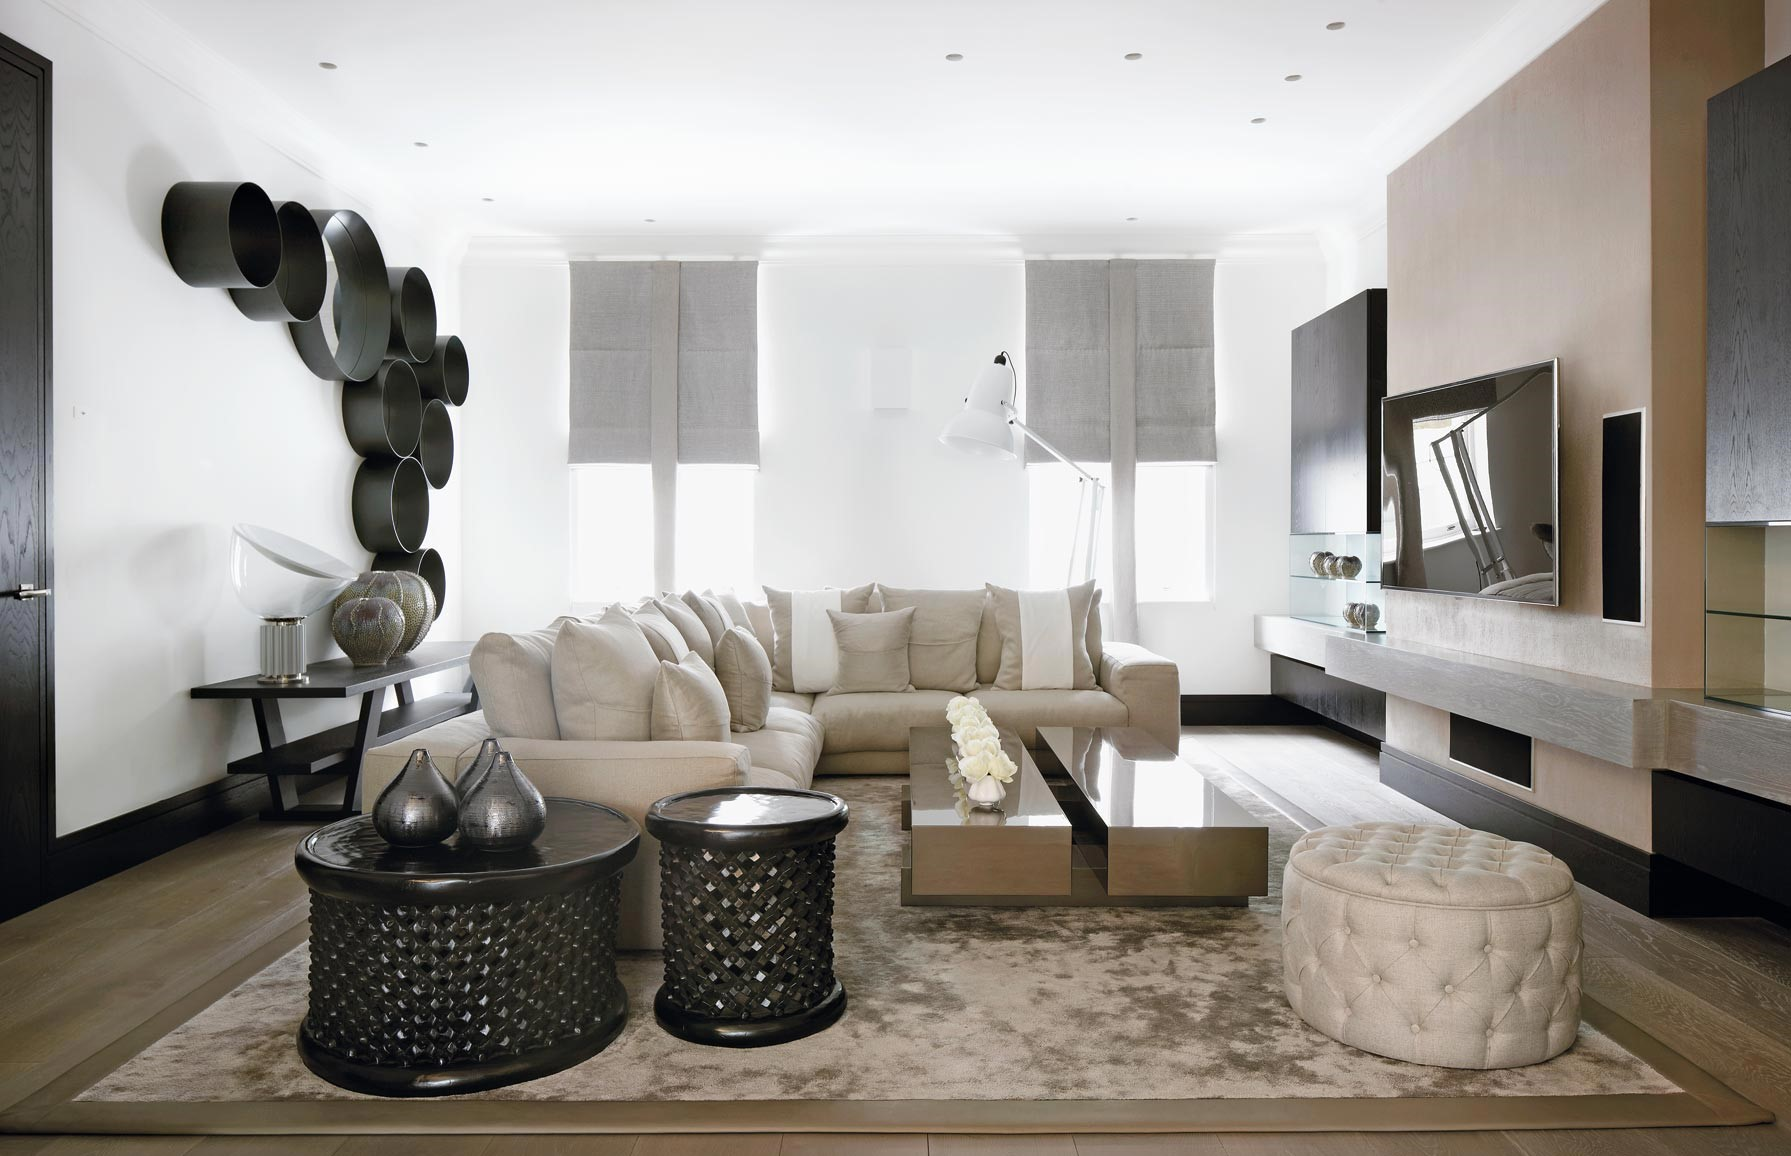 Family home living room design kelly hoppen Top 10 Kelly Hoppen Design Ideas the family home london3